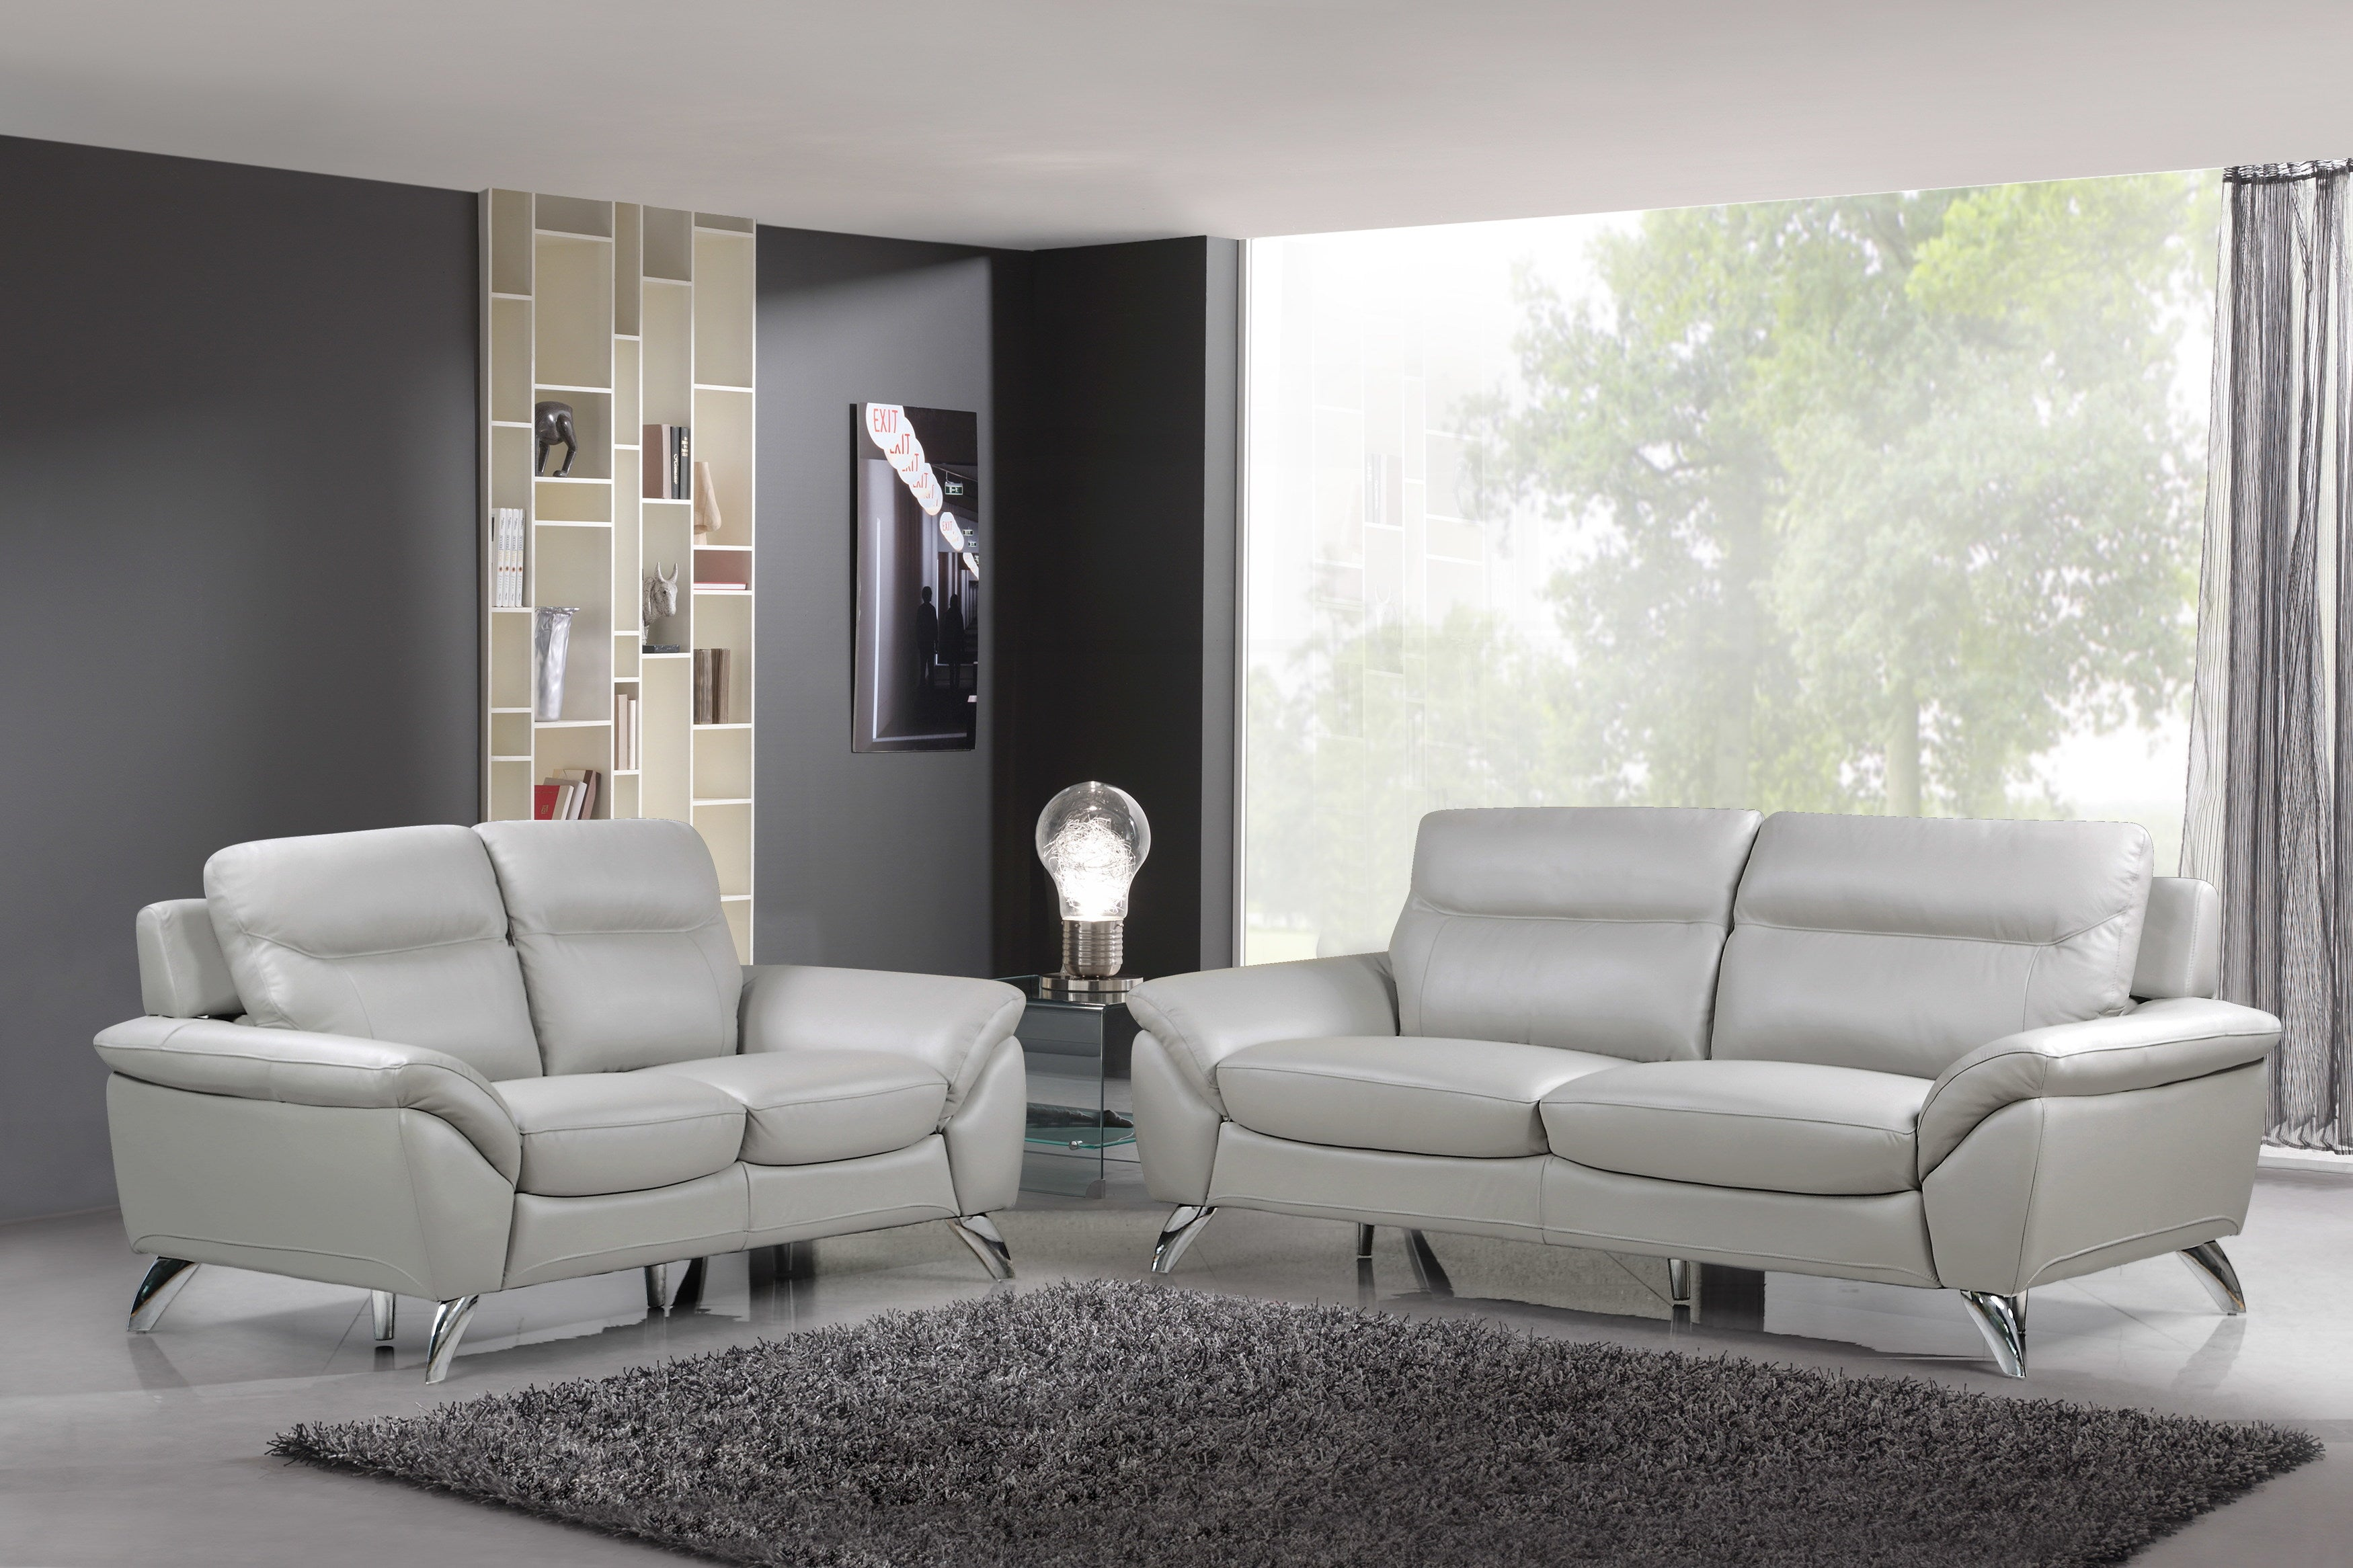 Remarkable Cortesi Home Contemporary Monaco Full Genuine Leather Sofa Loveseat Set Light Gray Unemploymentrelief Wooden Chair Designs For Living Room Unemploymentrelieforg